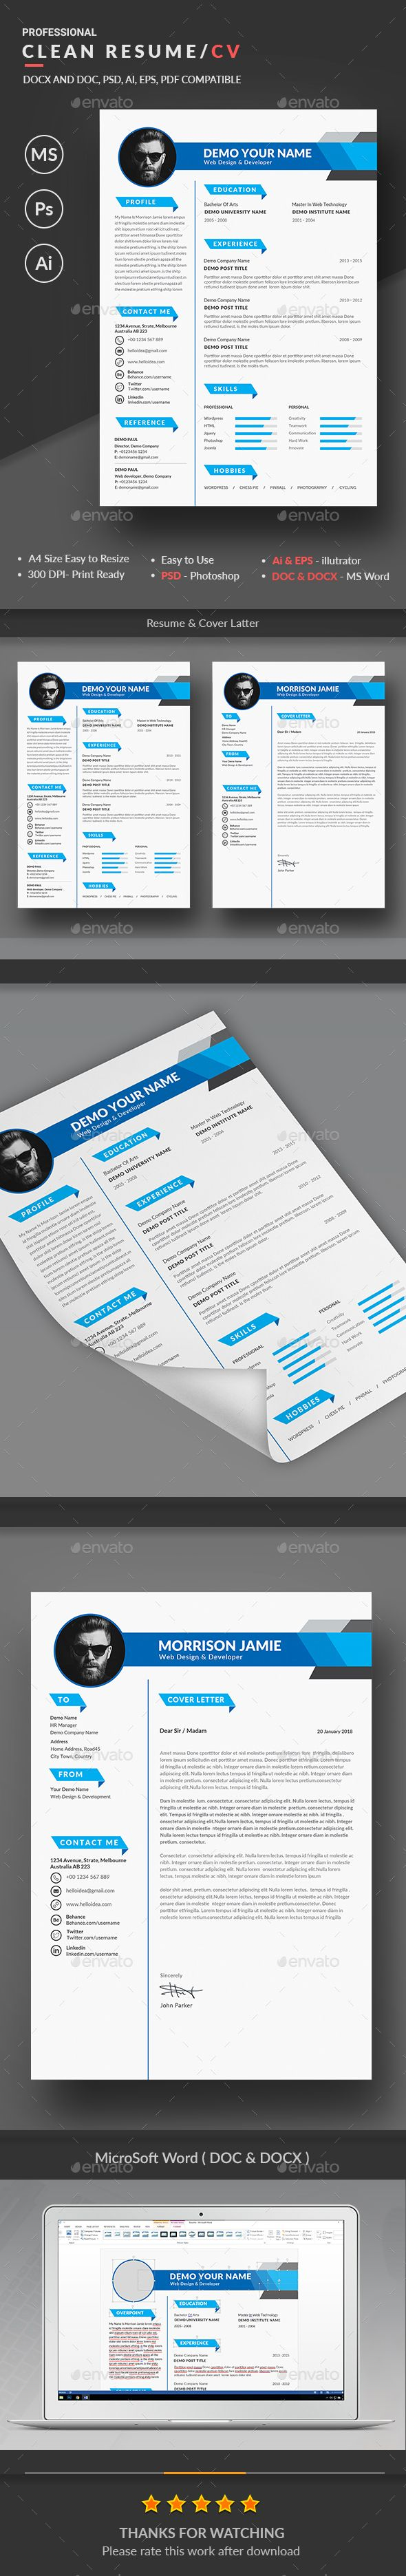 Porter Resume Brilliant Creative Resume Template Psd Vector Eps Ai Illustrator Ms Word .